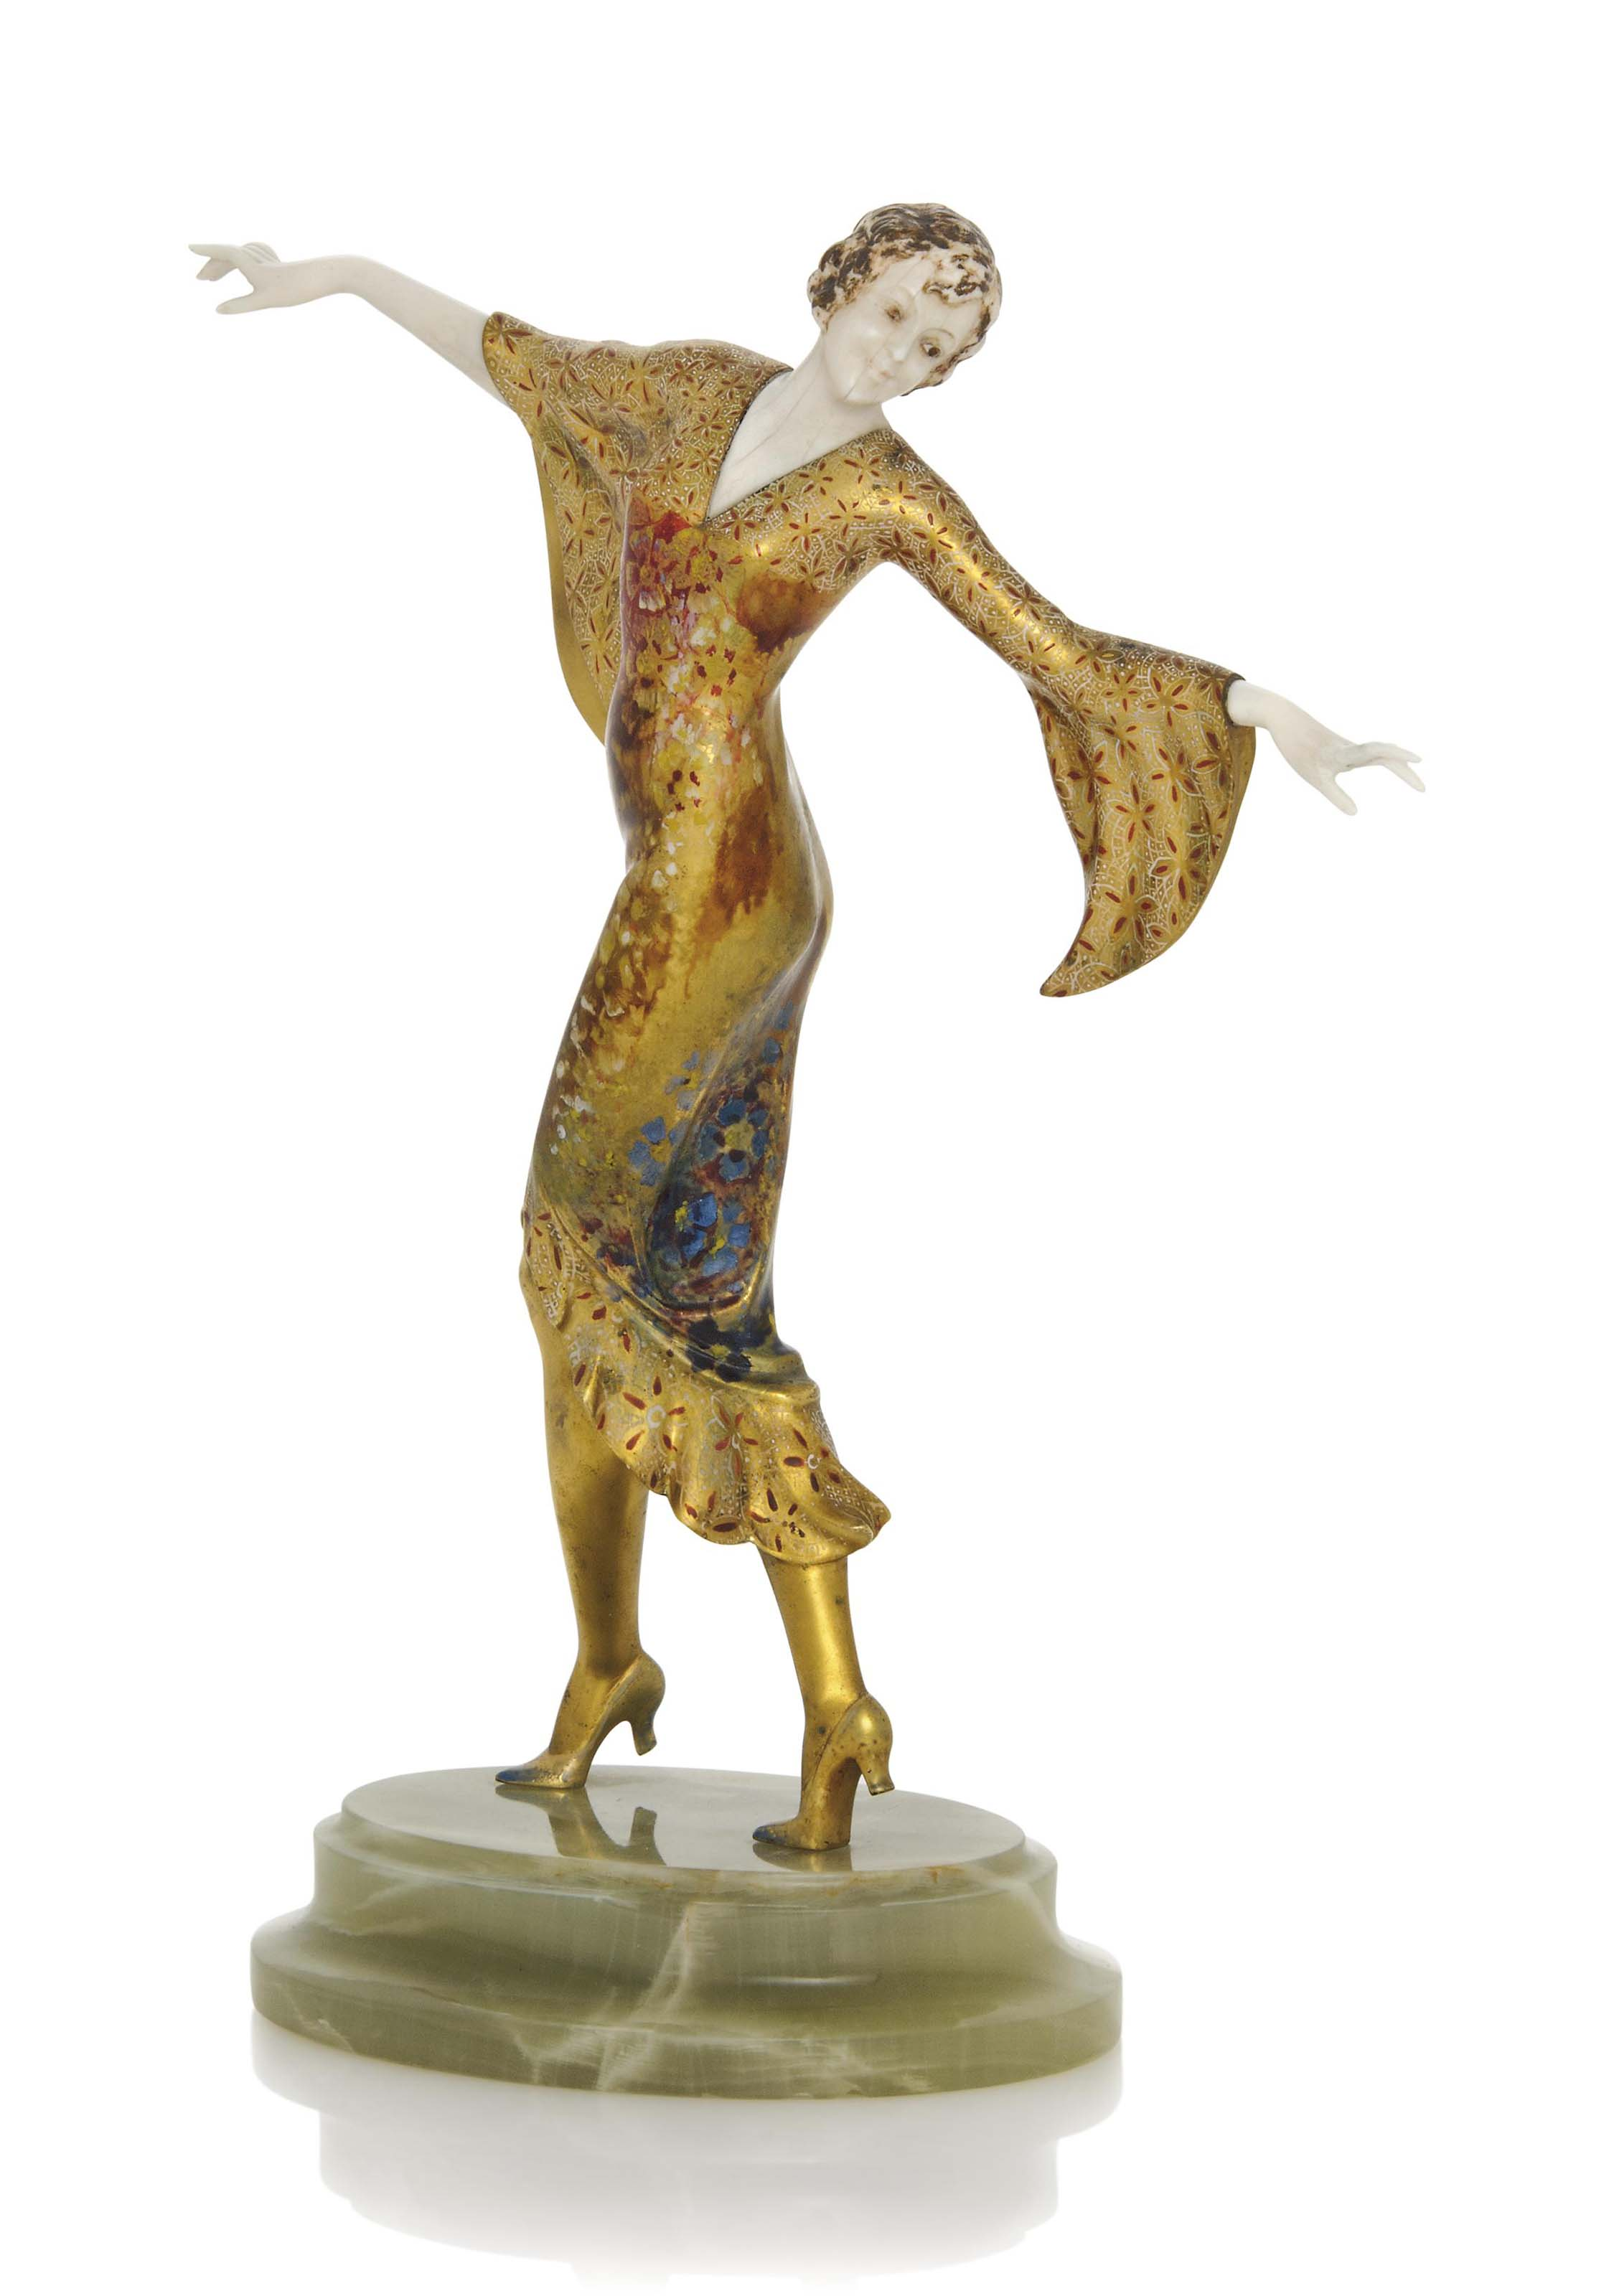 'THE DANCER' AN ART DECO COLD-